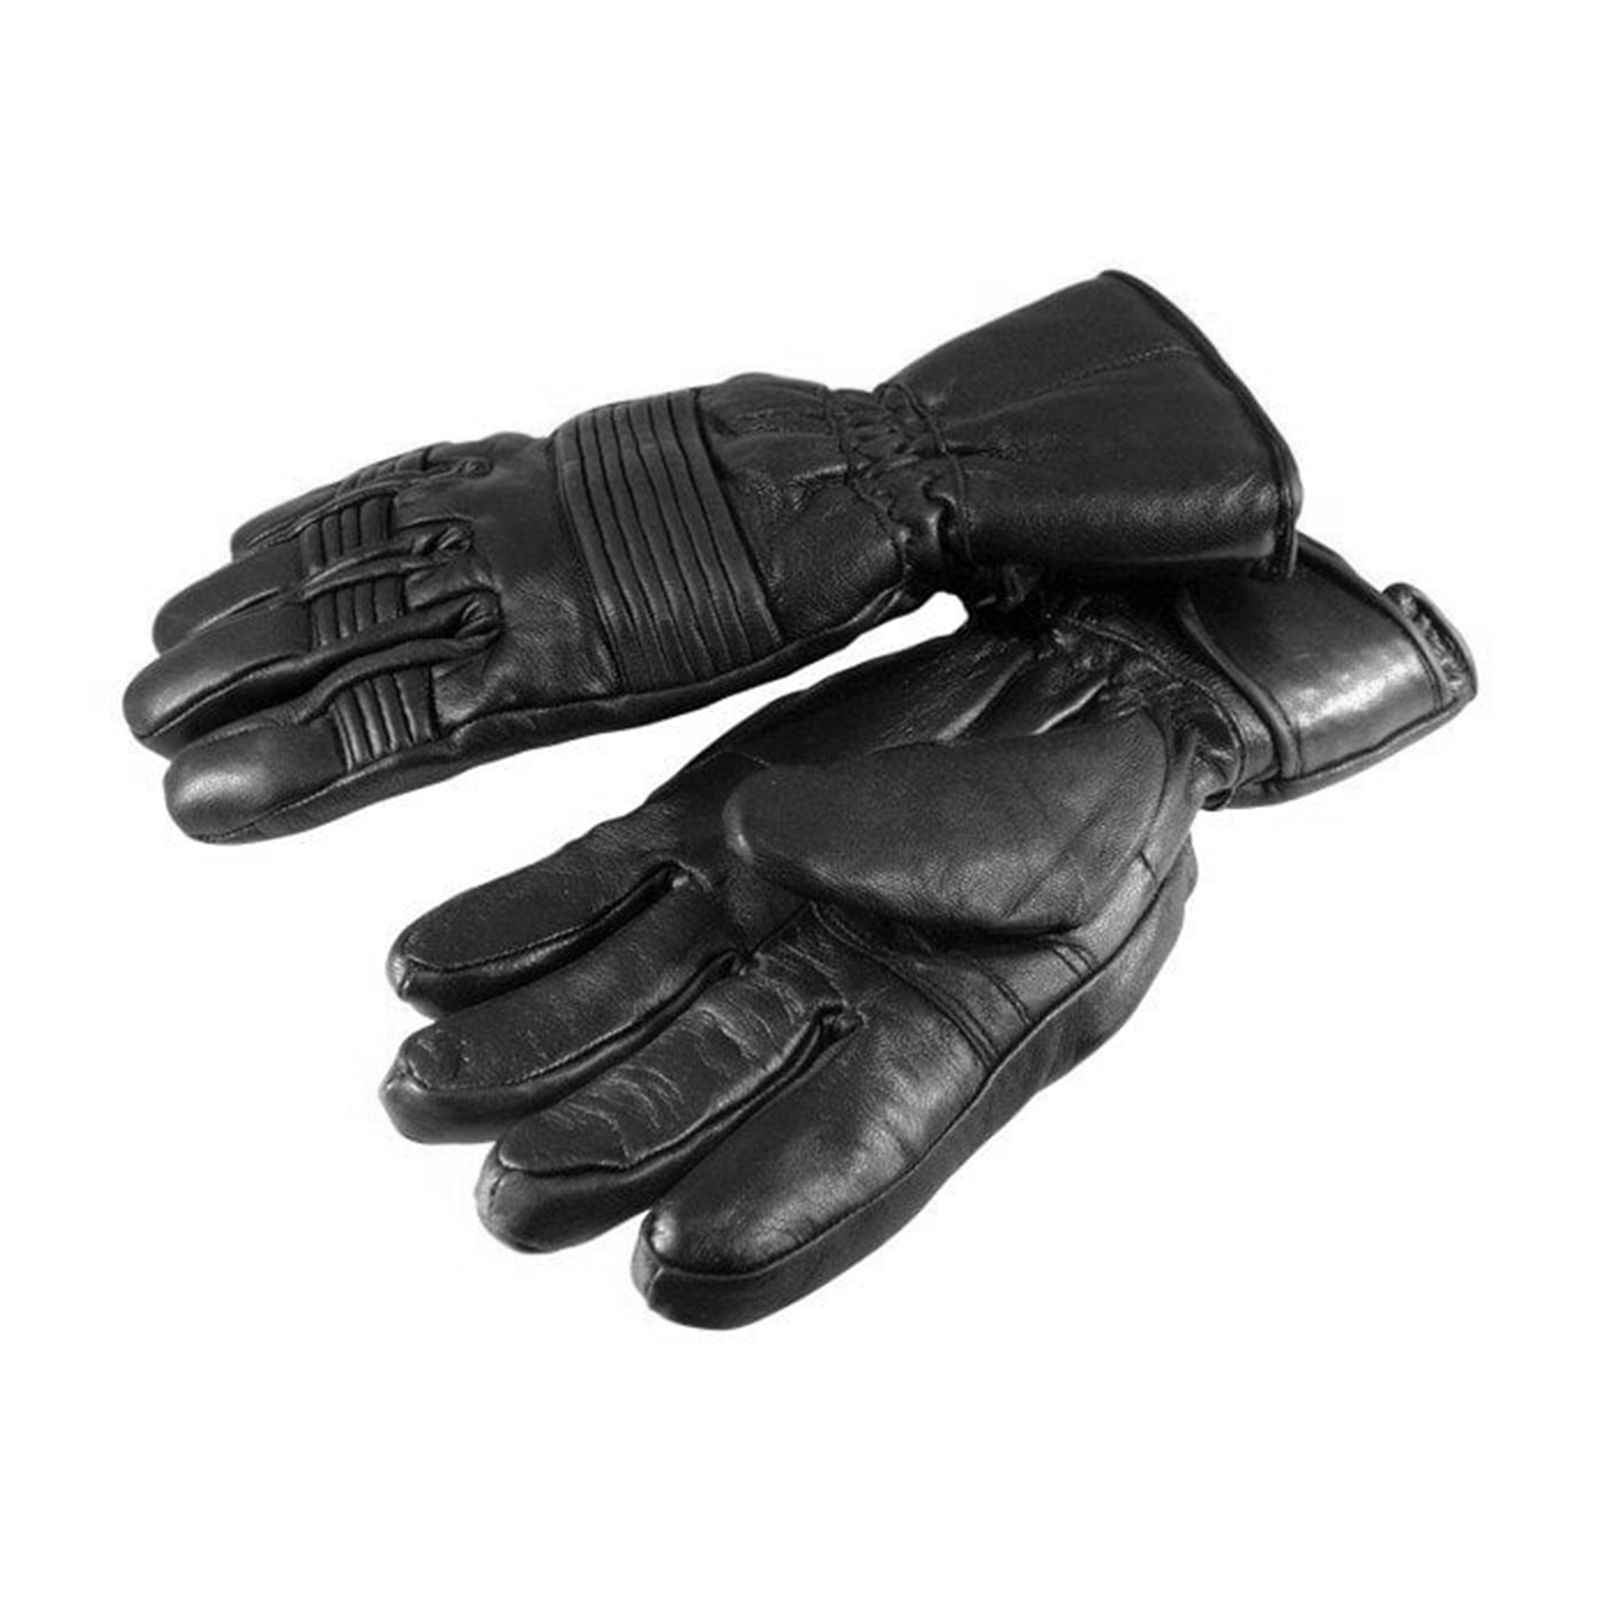 RST Tractech Evo CE 2583 Mens Water Proof Glove Black S 08